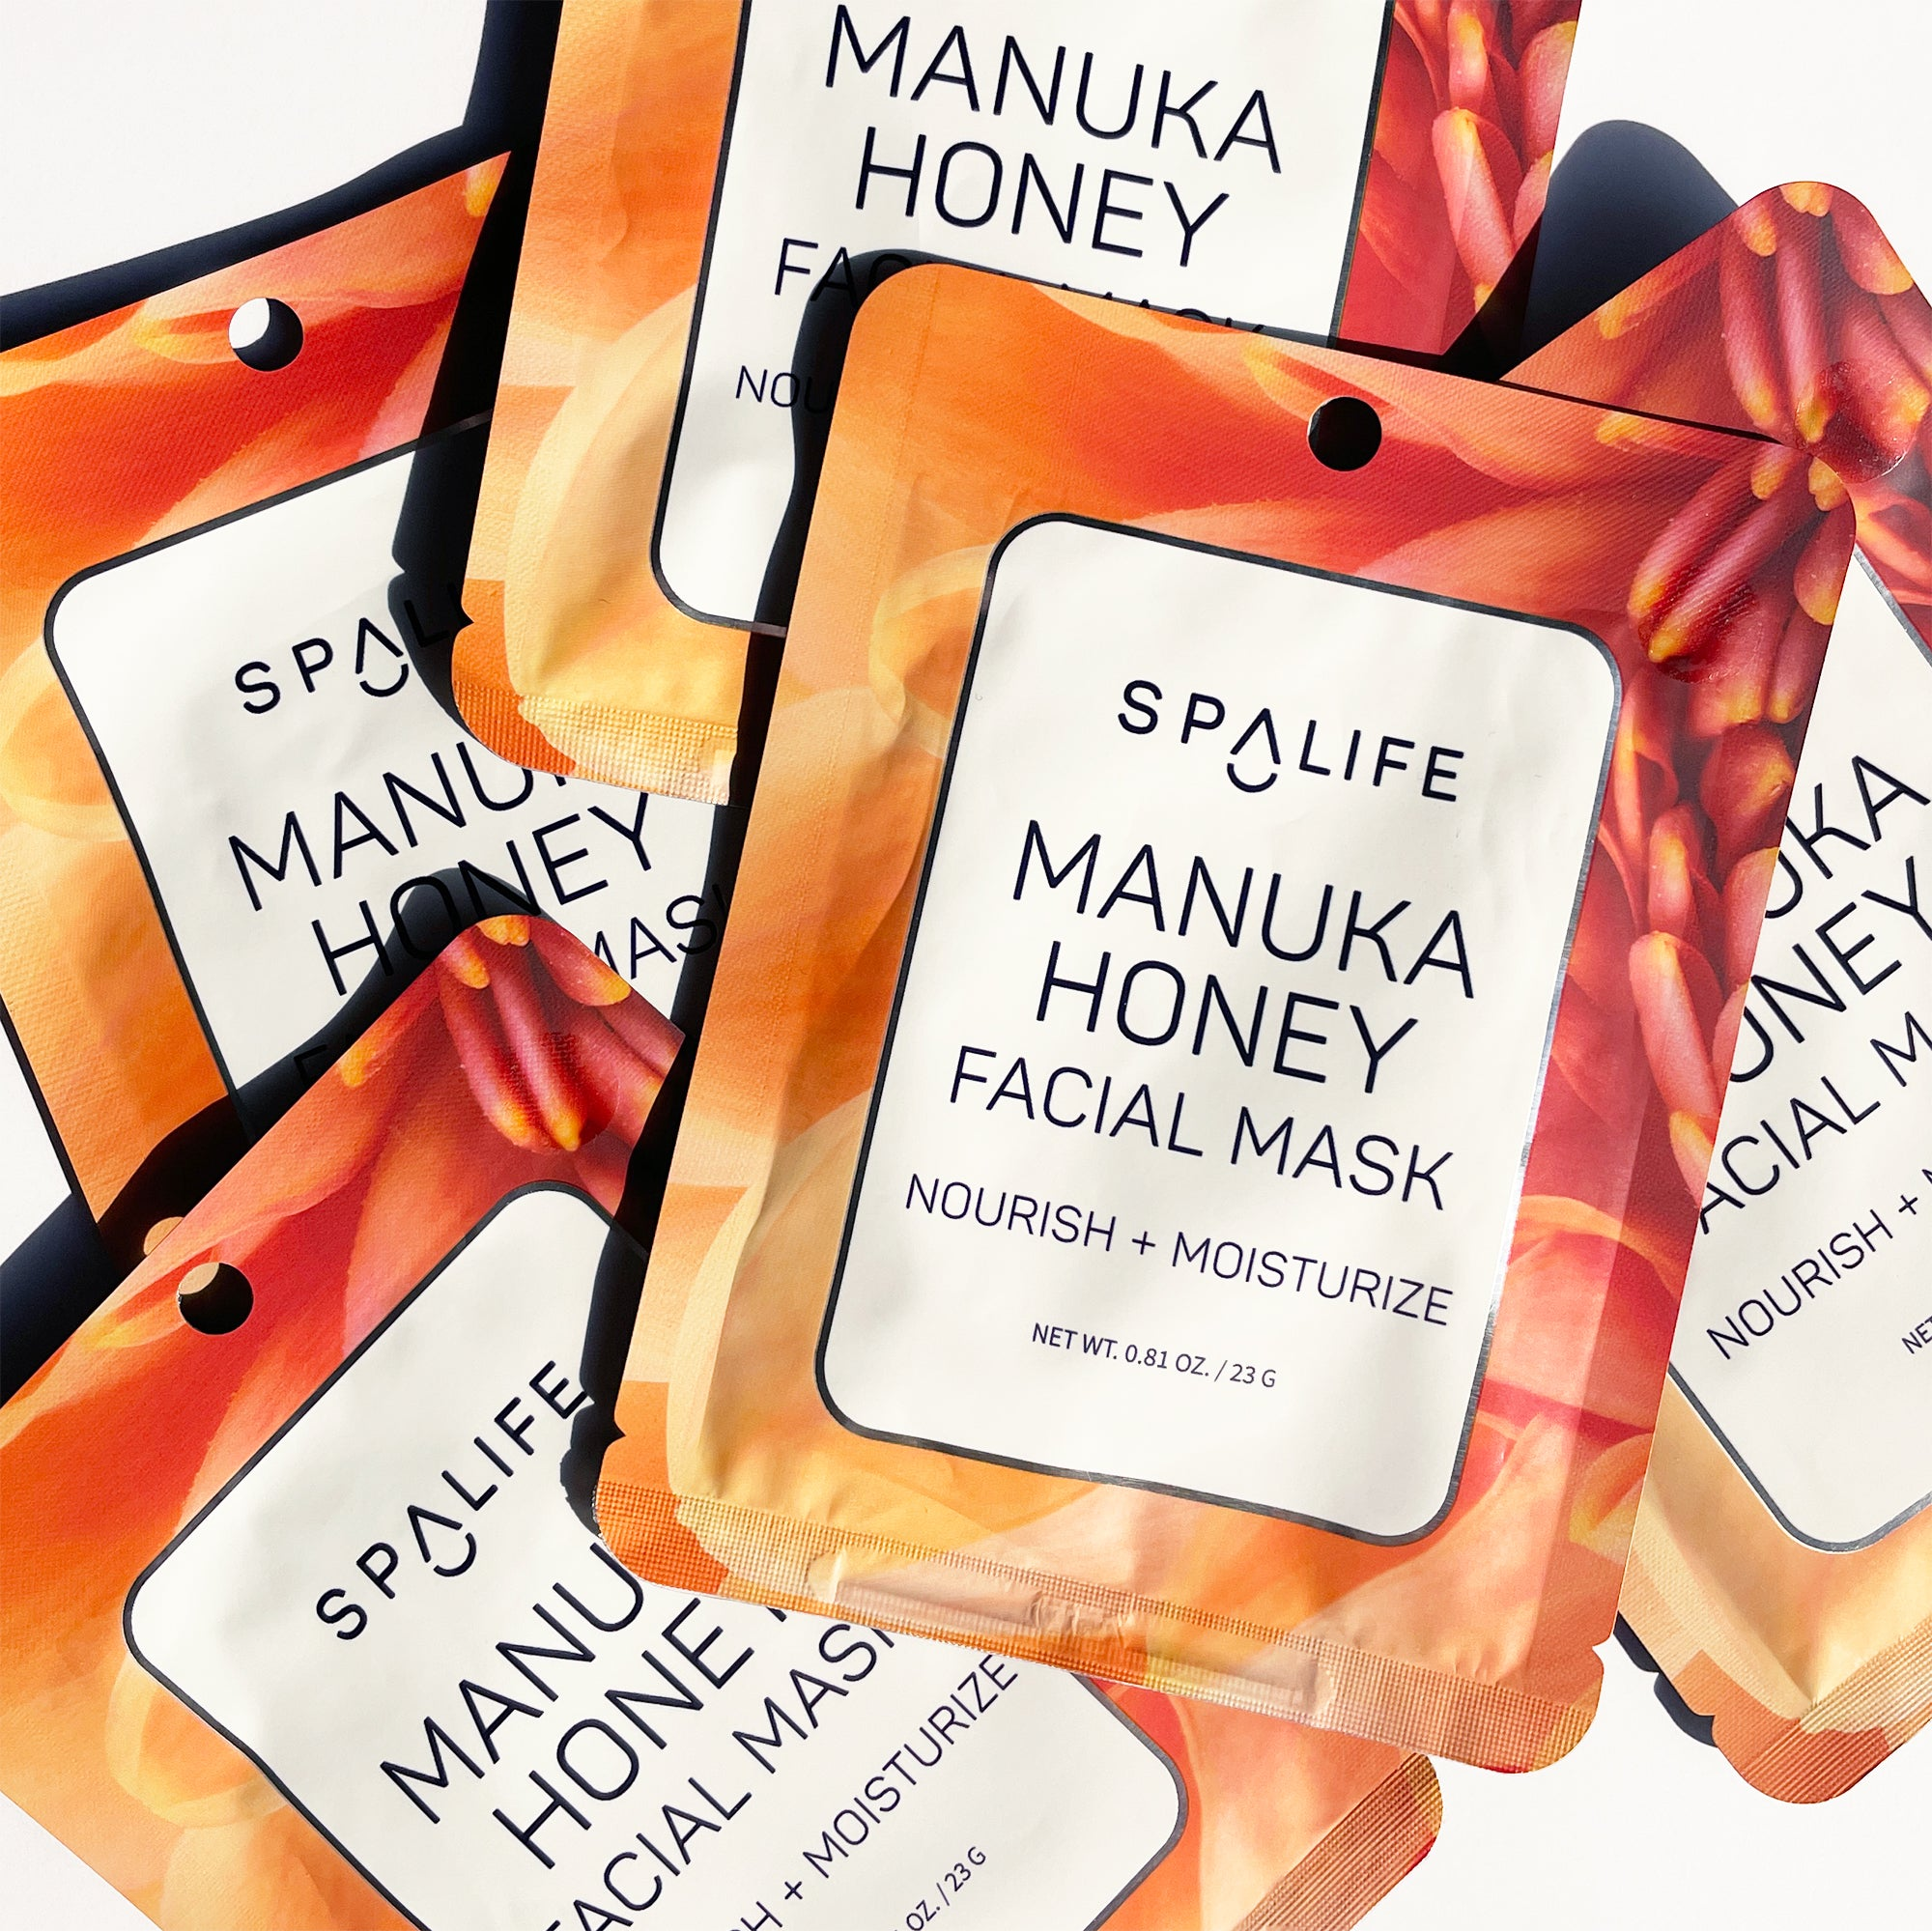 Manuka Honey Facial Mask - Nourish & Moisturize